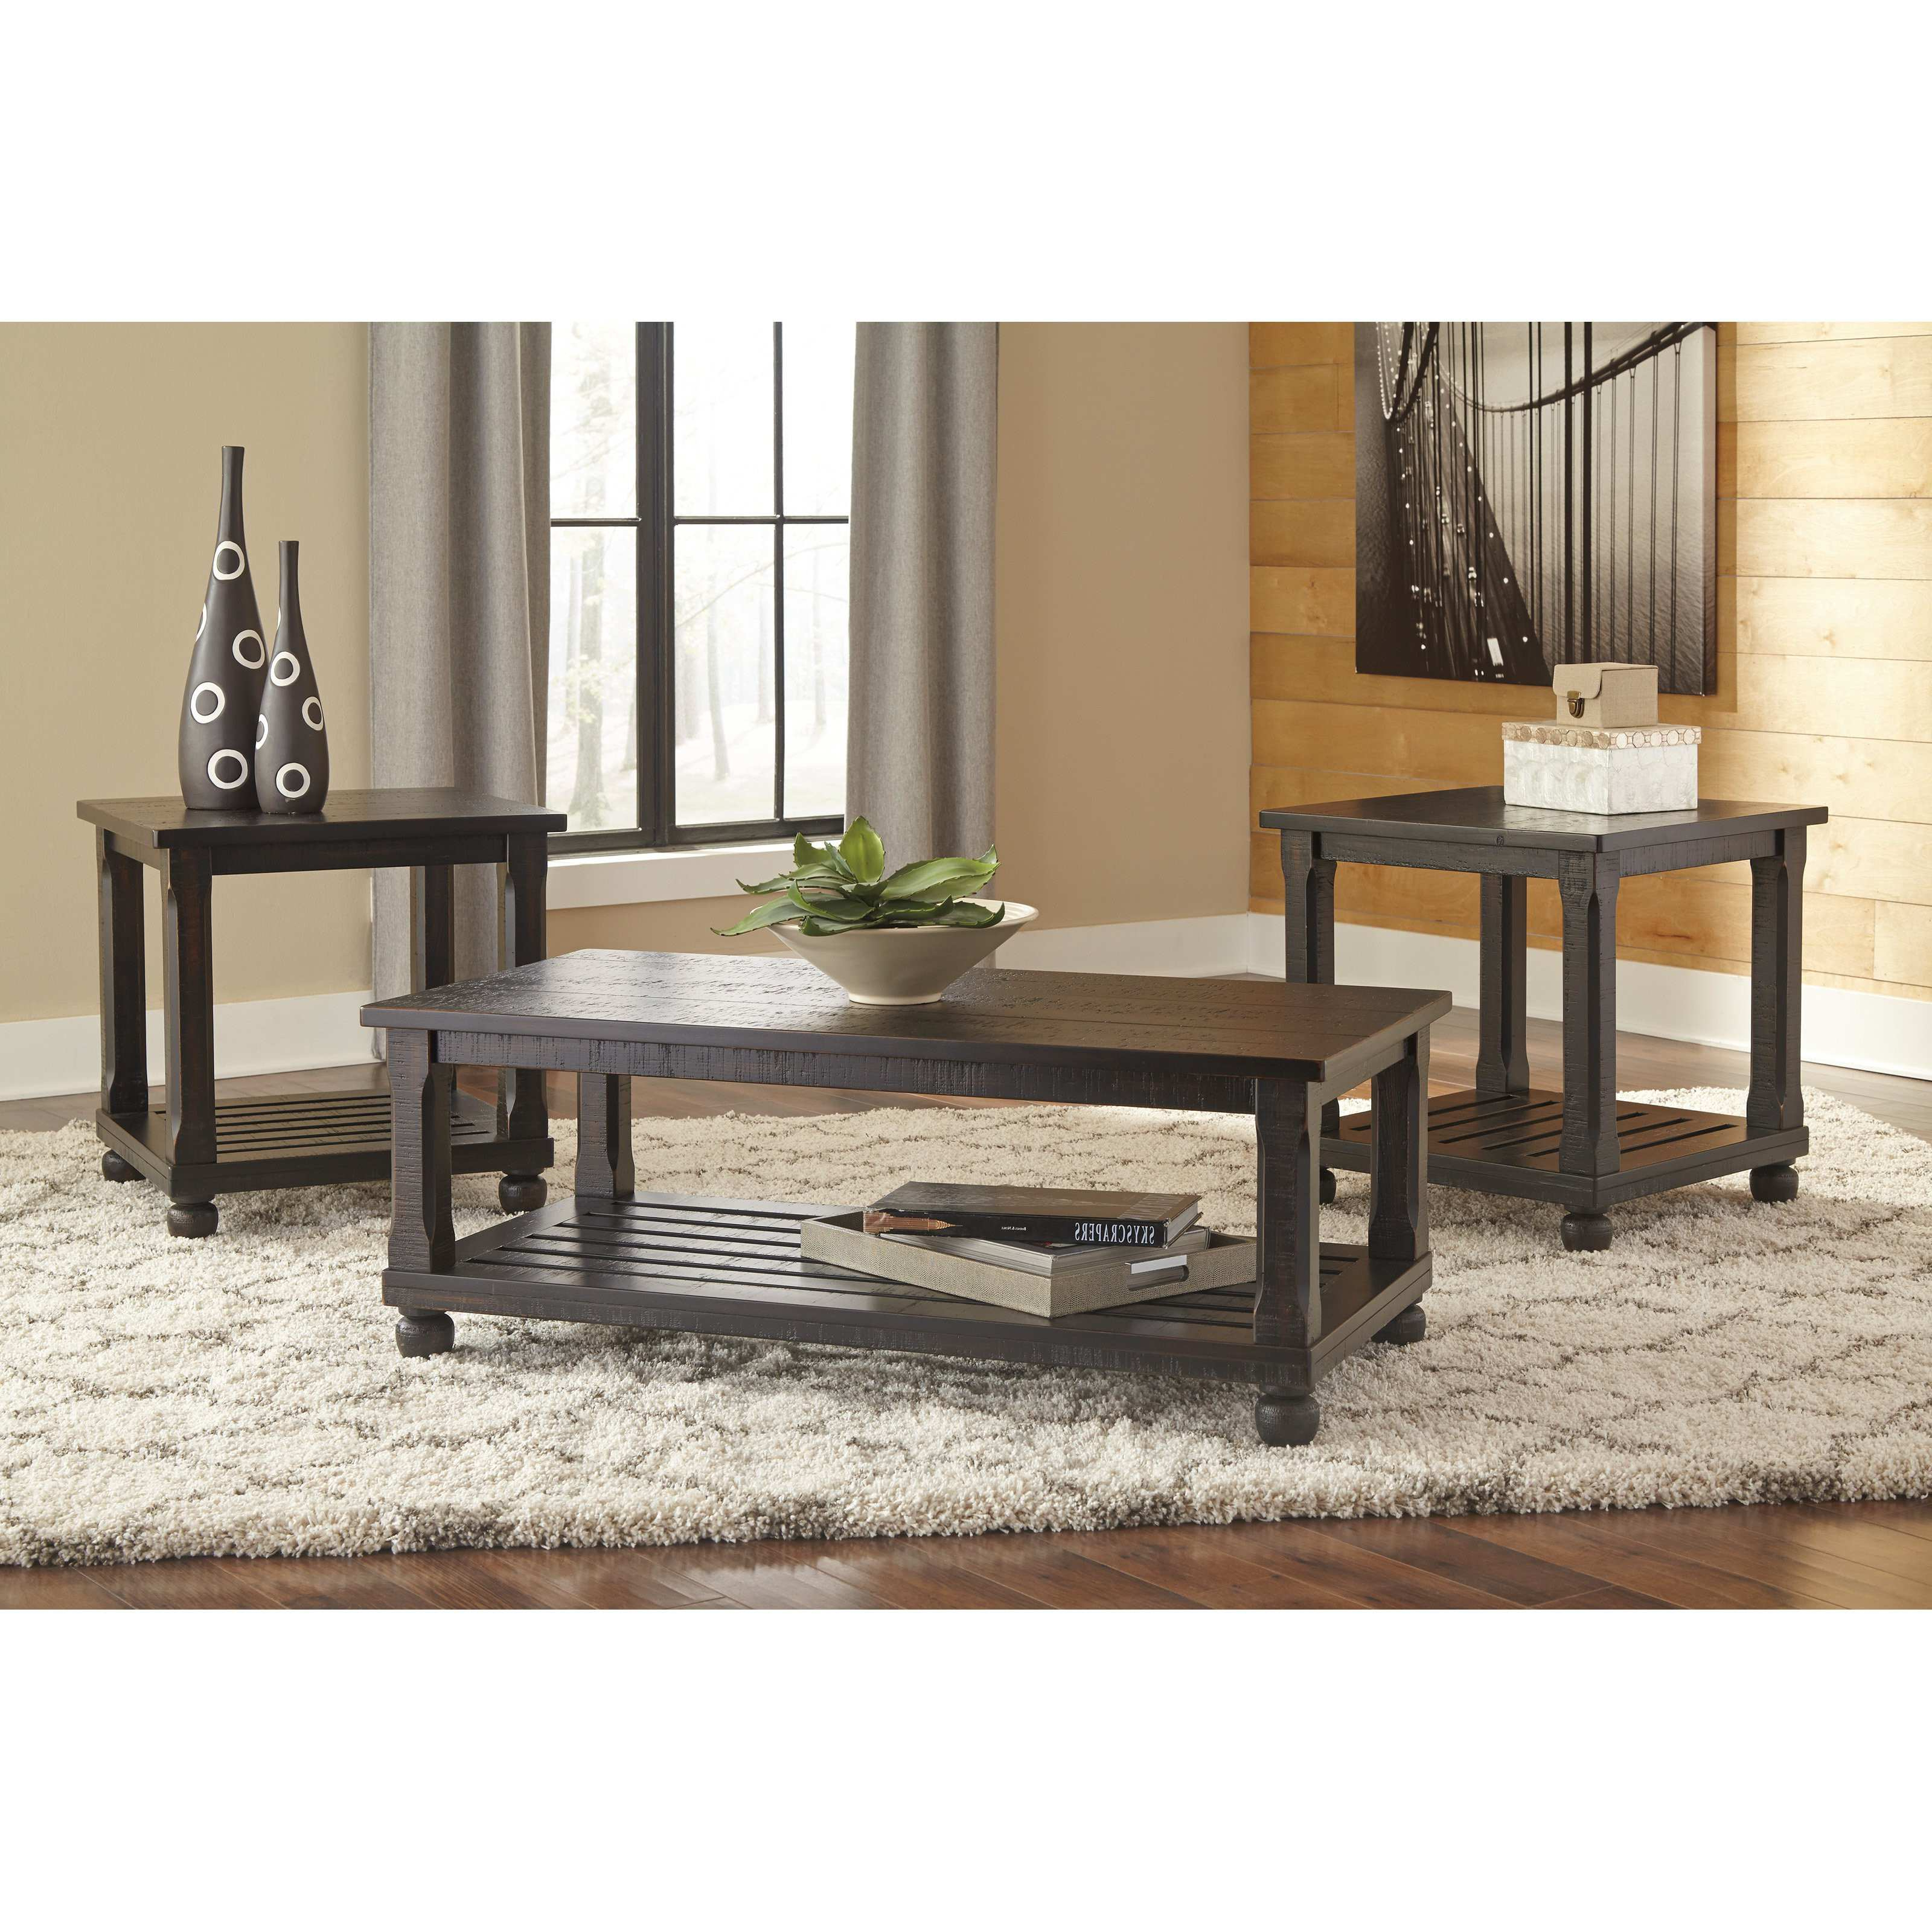 9 Crate And Barrel Concrete Coffee Table Gallery | Coffee Tables Ideas With Regard To Parsons Travertine Top & Stainless Steel Base 48x16 Console Tables (View 15 of 15)